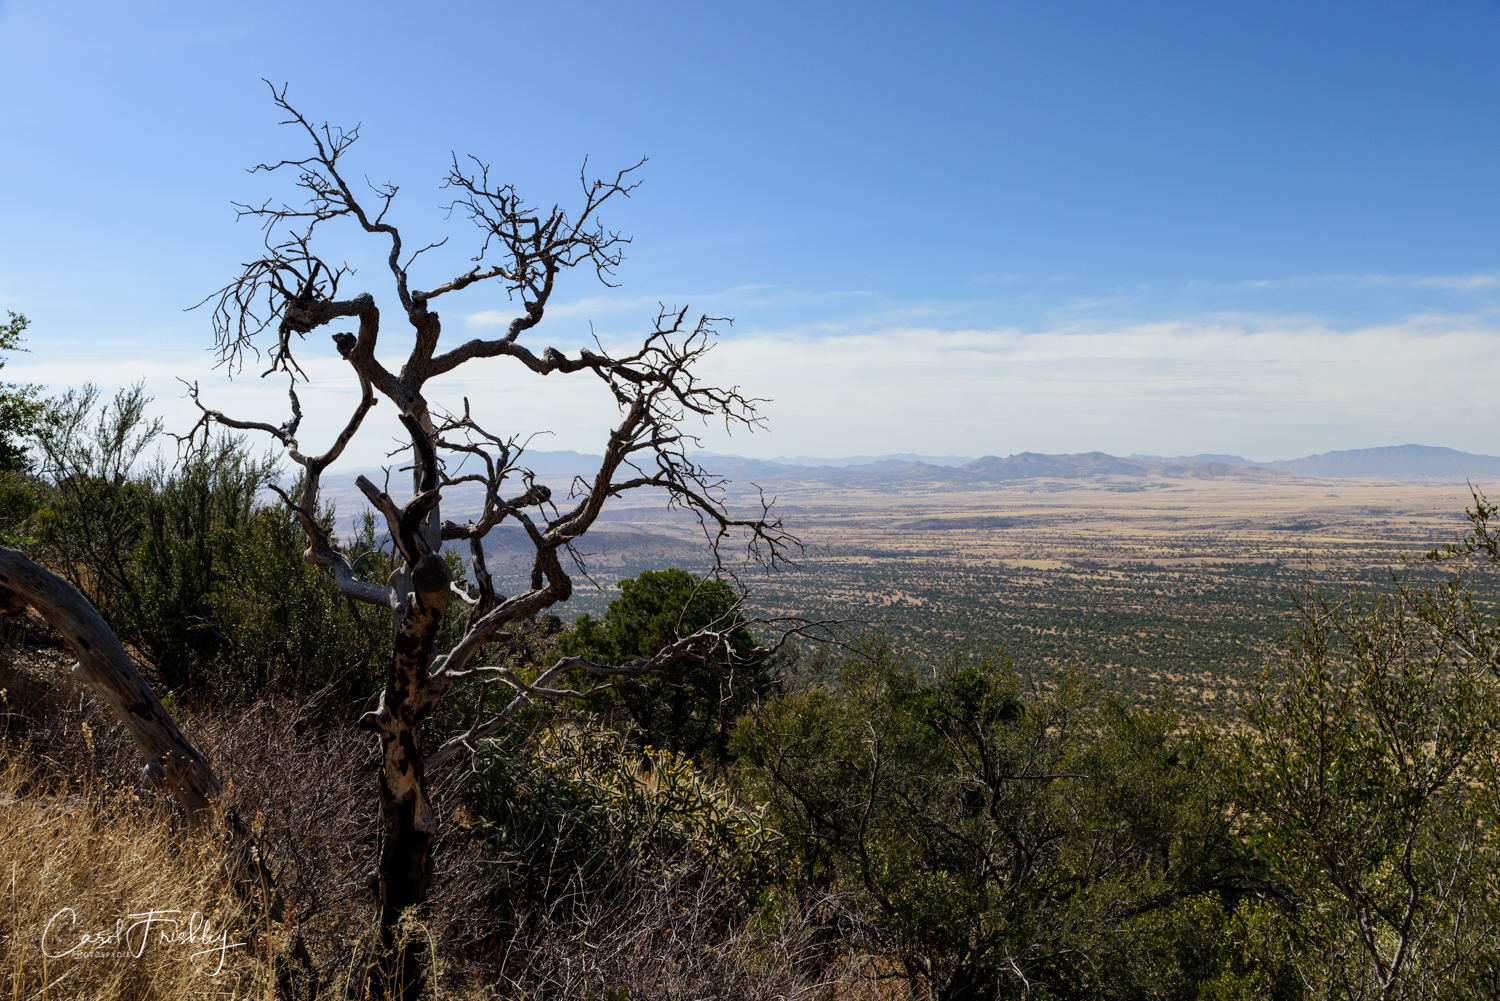 Looking back and down at the San Rafael Valley.